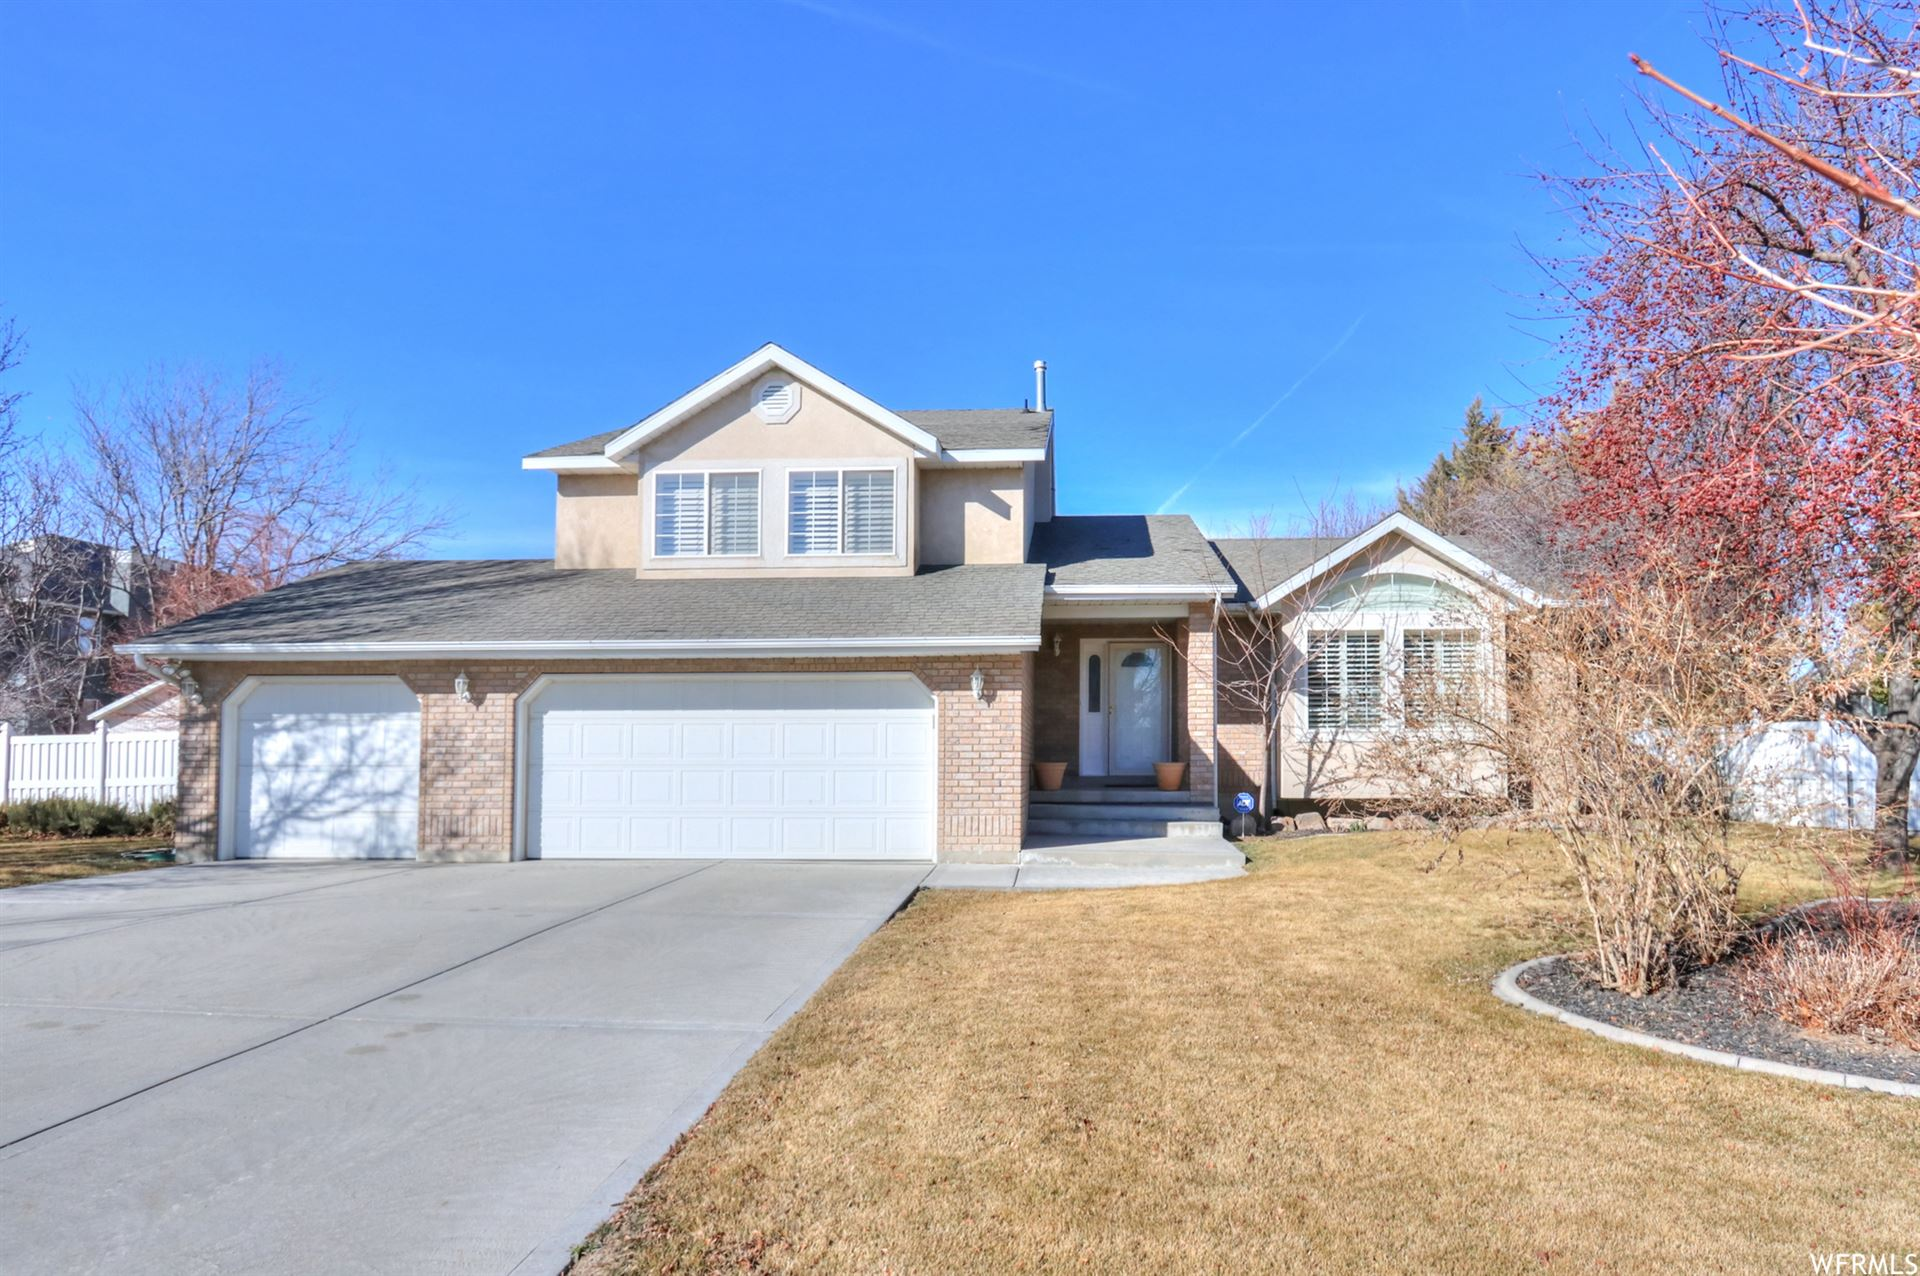 Photo of 1450 W 11775 S, Riverton, UT 84065 (MLS # 1726570)